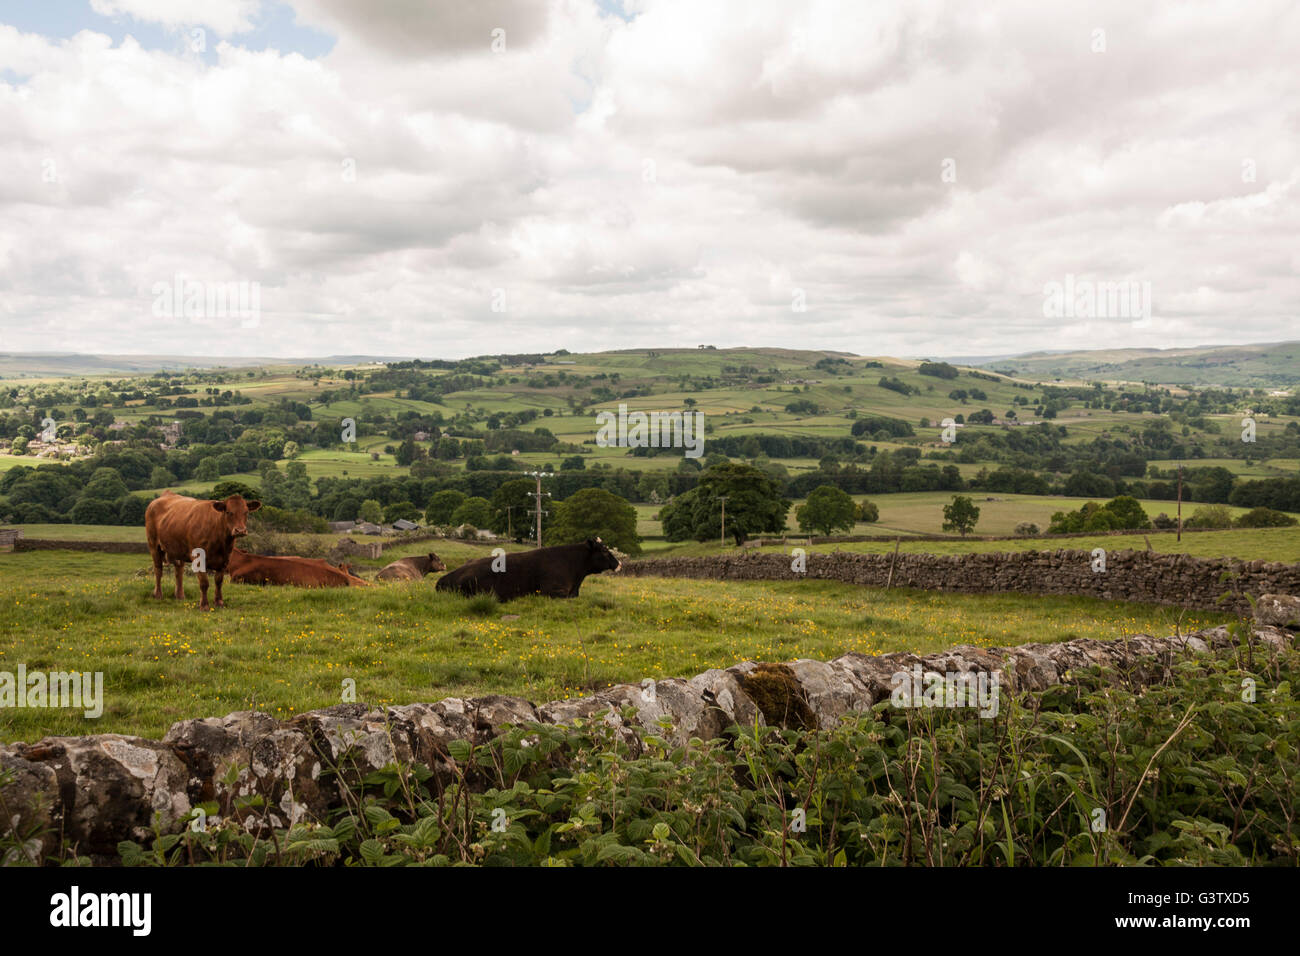 A scenic view of the Teesdale countryside with cattle grazing in the field surrounded by stone walls and green pastures - Stock Image